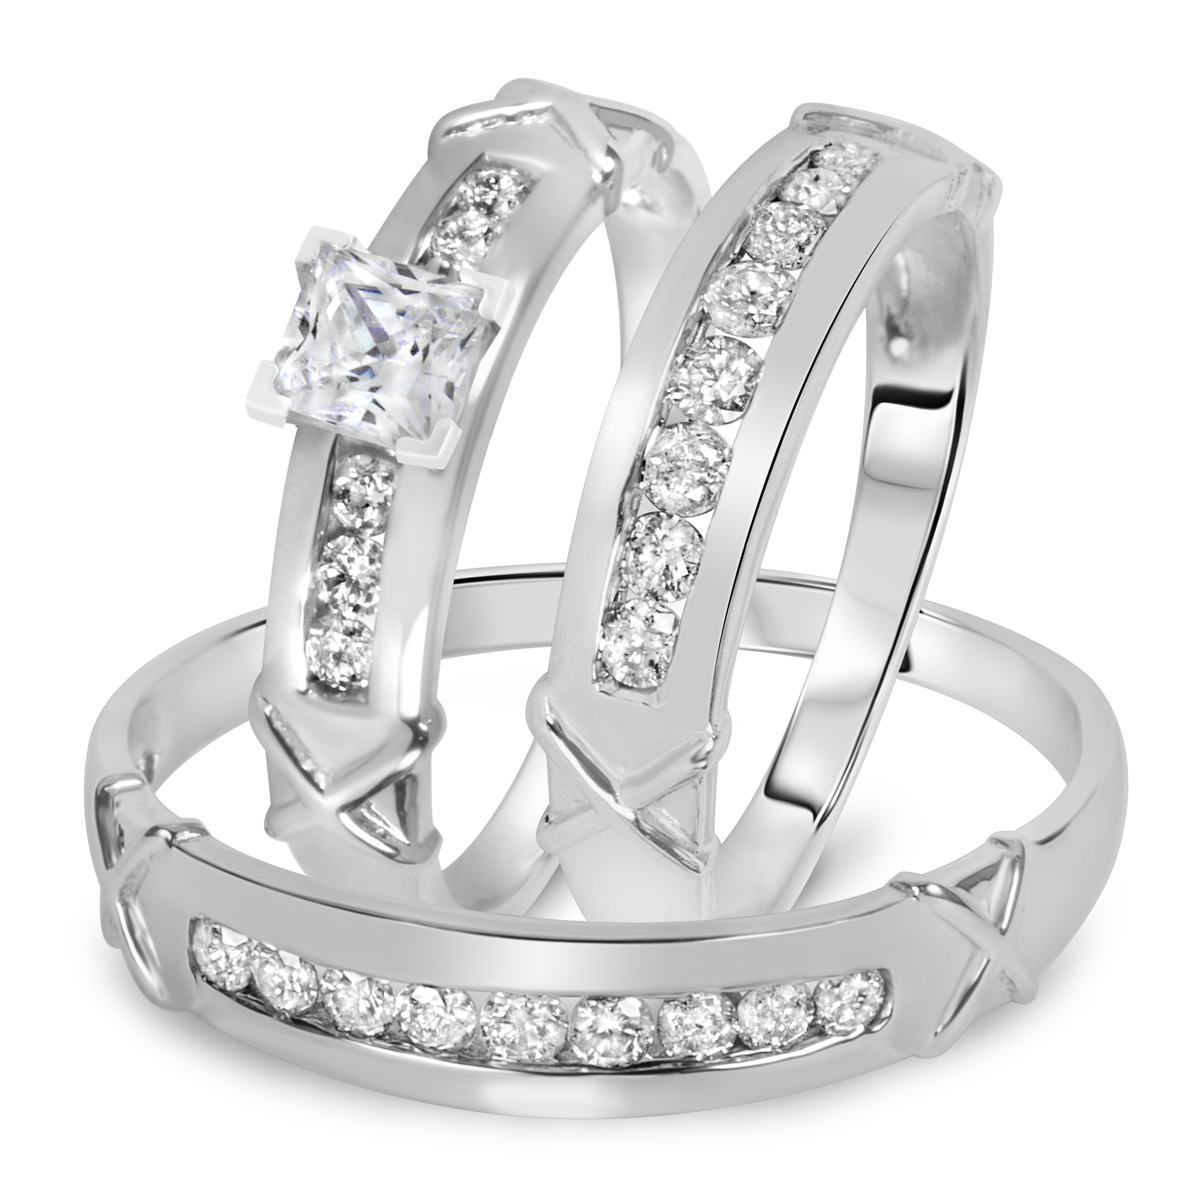 1 1/7 CT. T.W. Diamond Ladies Engagement Ring, Wedding Band, Men's Wedding Band Matching Set 10K White Gold